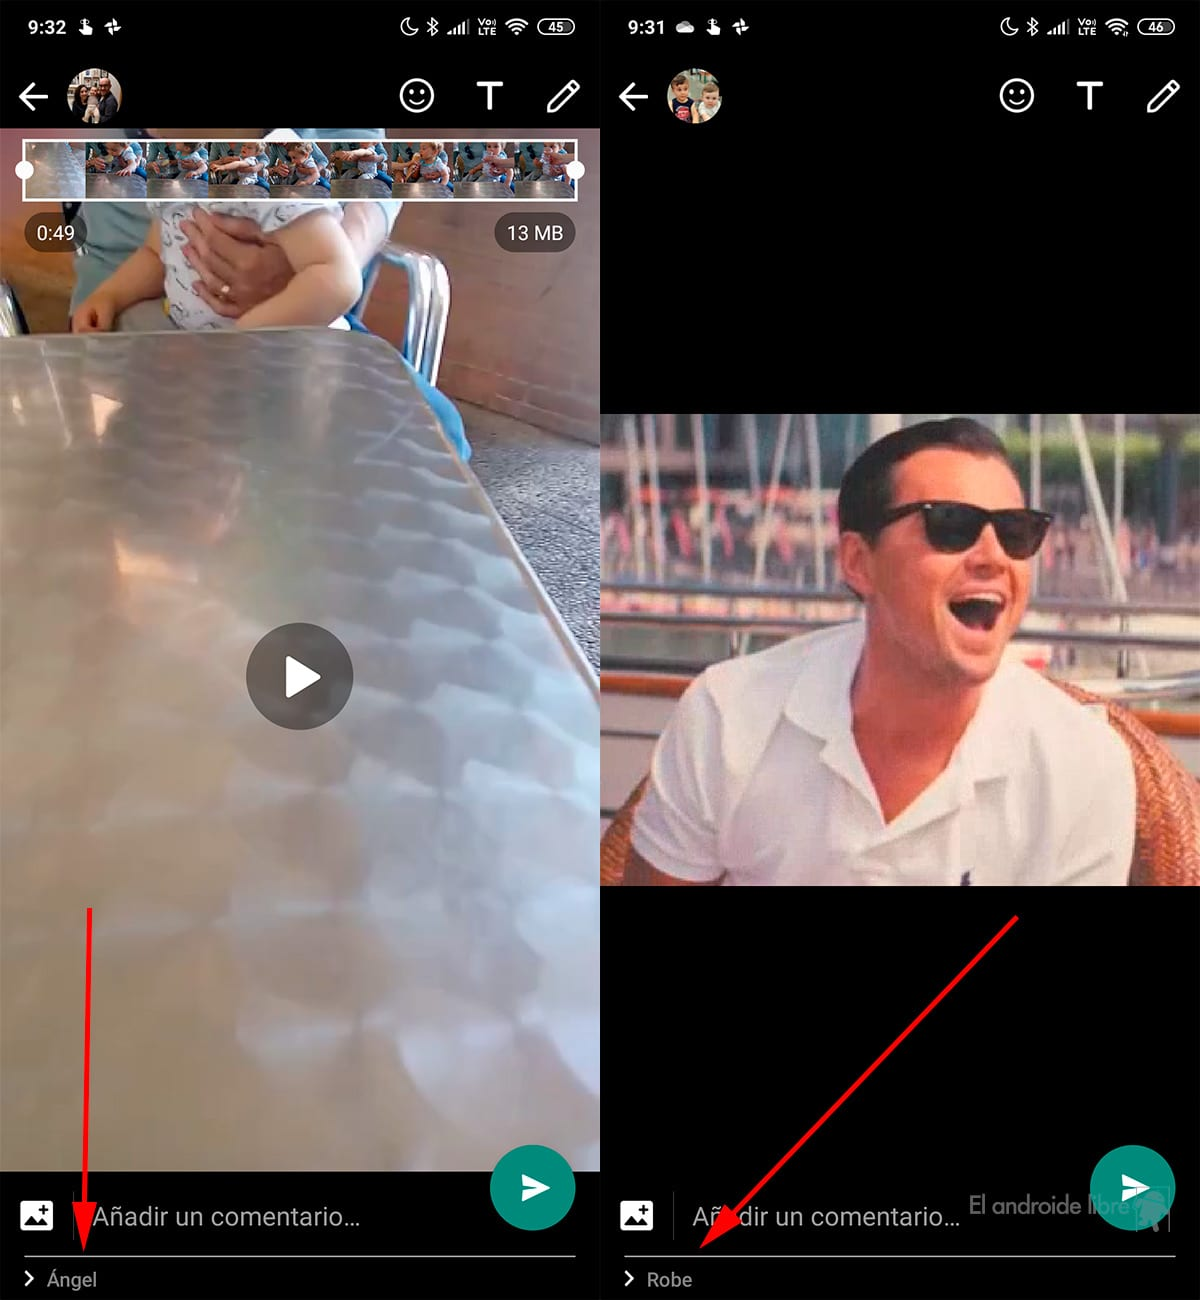 WhatsApp helps you not to make a mistake in contact when sending a photo